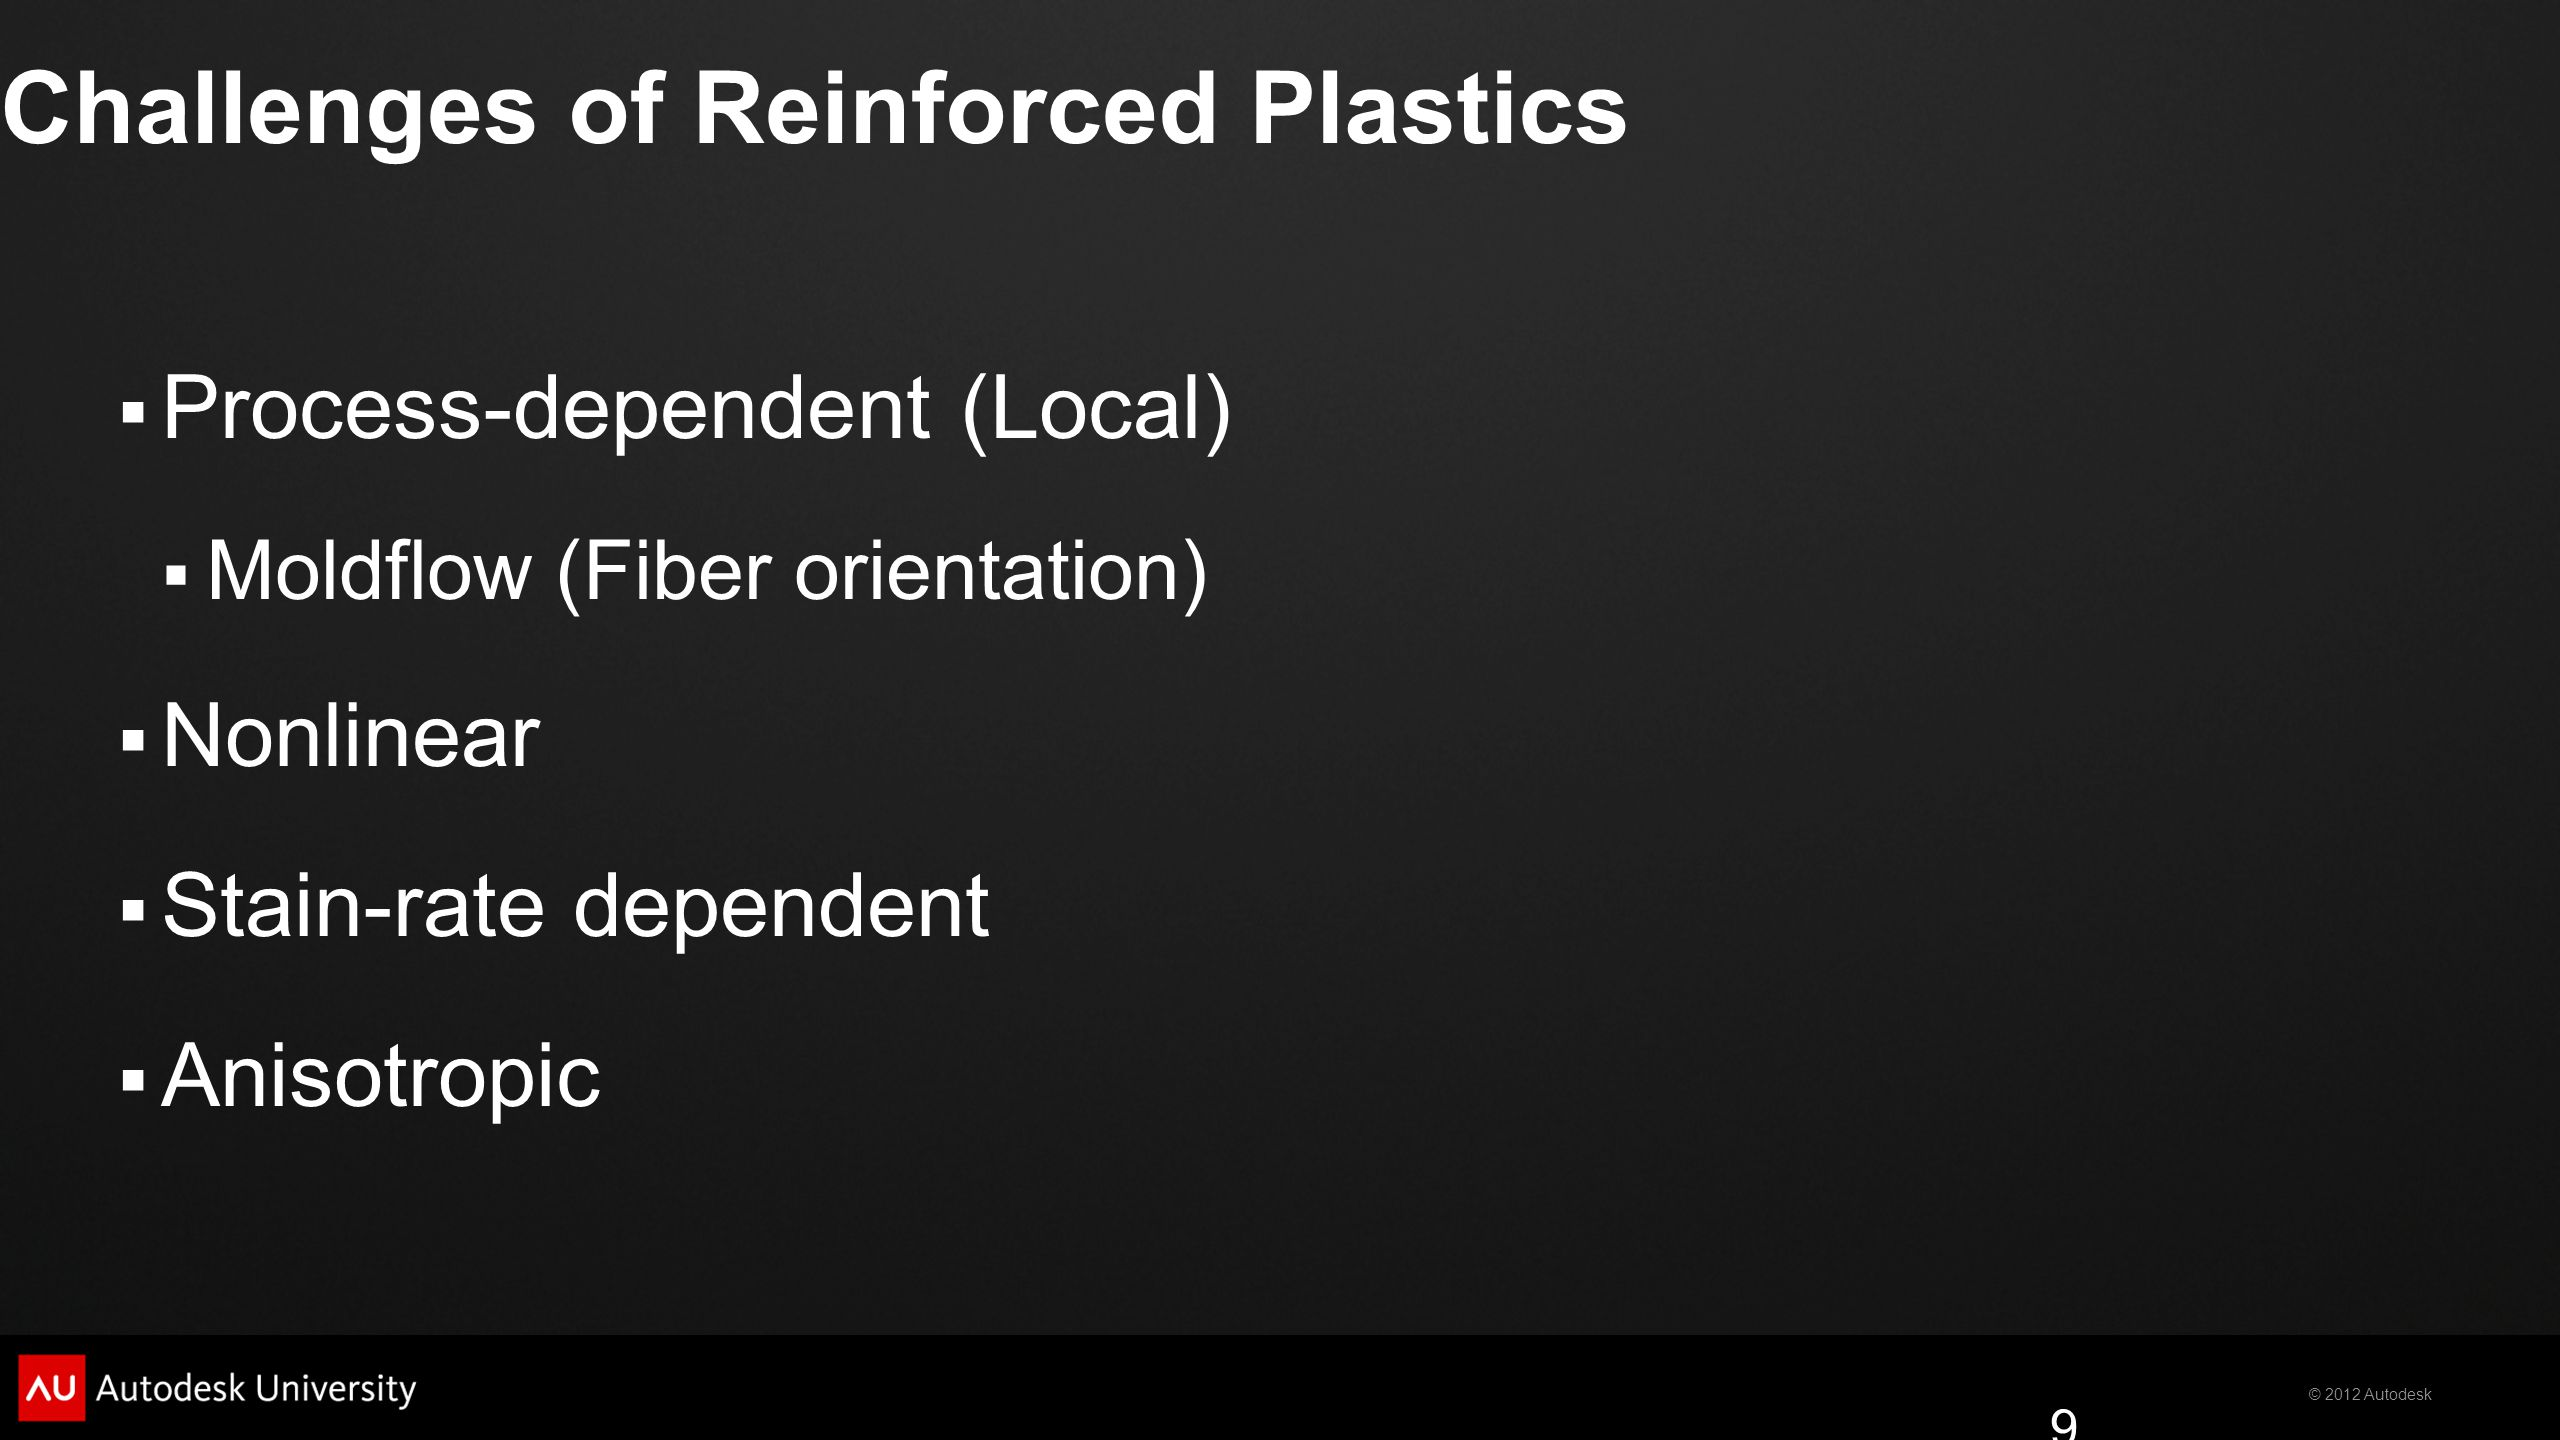 Challenges of Reinforced Plastics